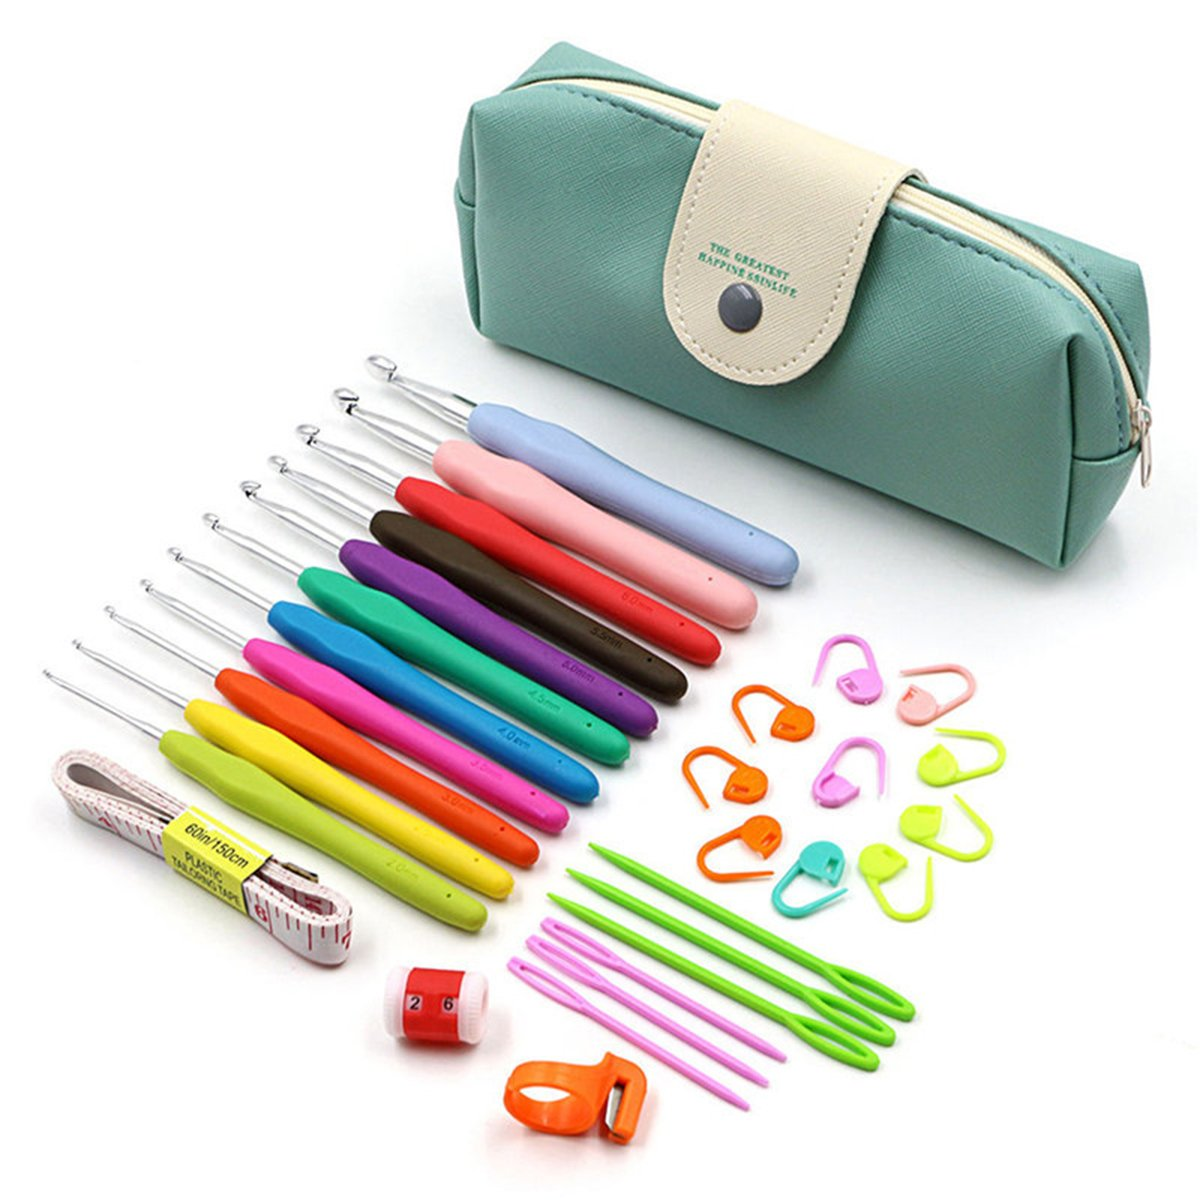 WCHAOEN 30Pcs 2-8mm Crochet Hooks Yarn Knitting Needles Sewing Tools Kit with Comfort Rubber Grip Accessories Tool